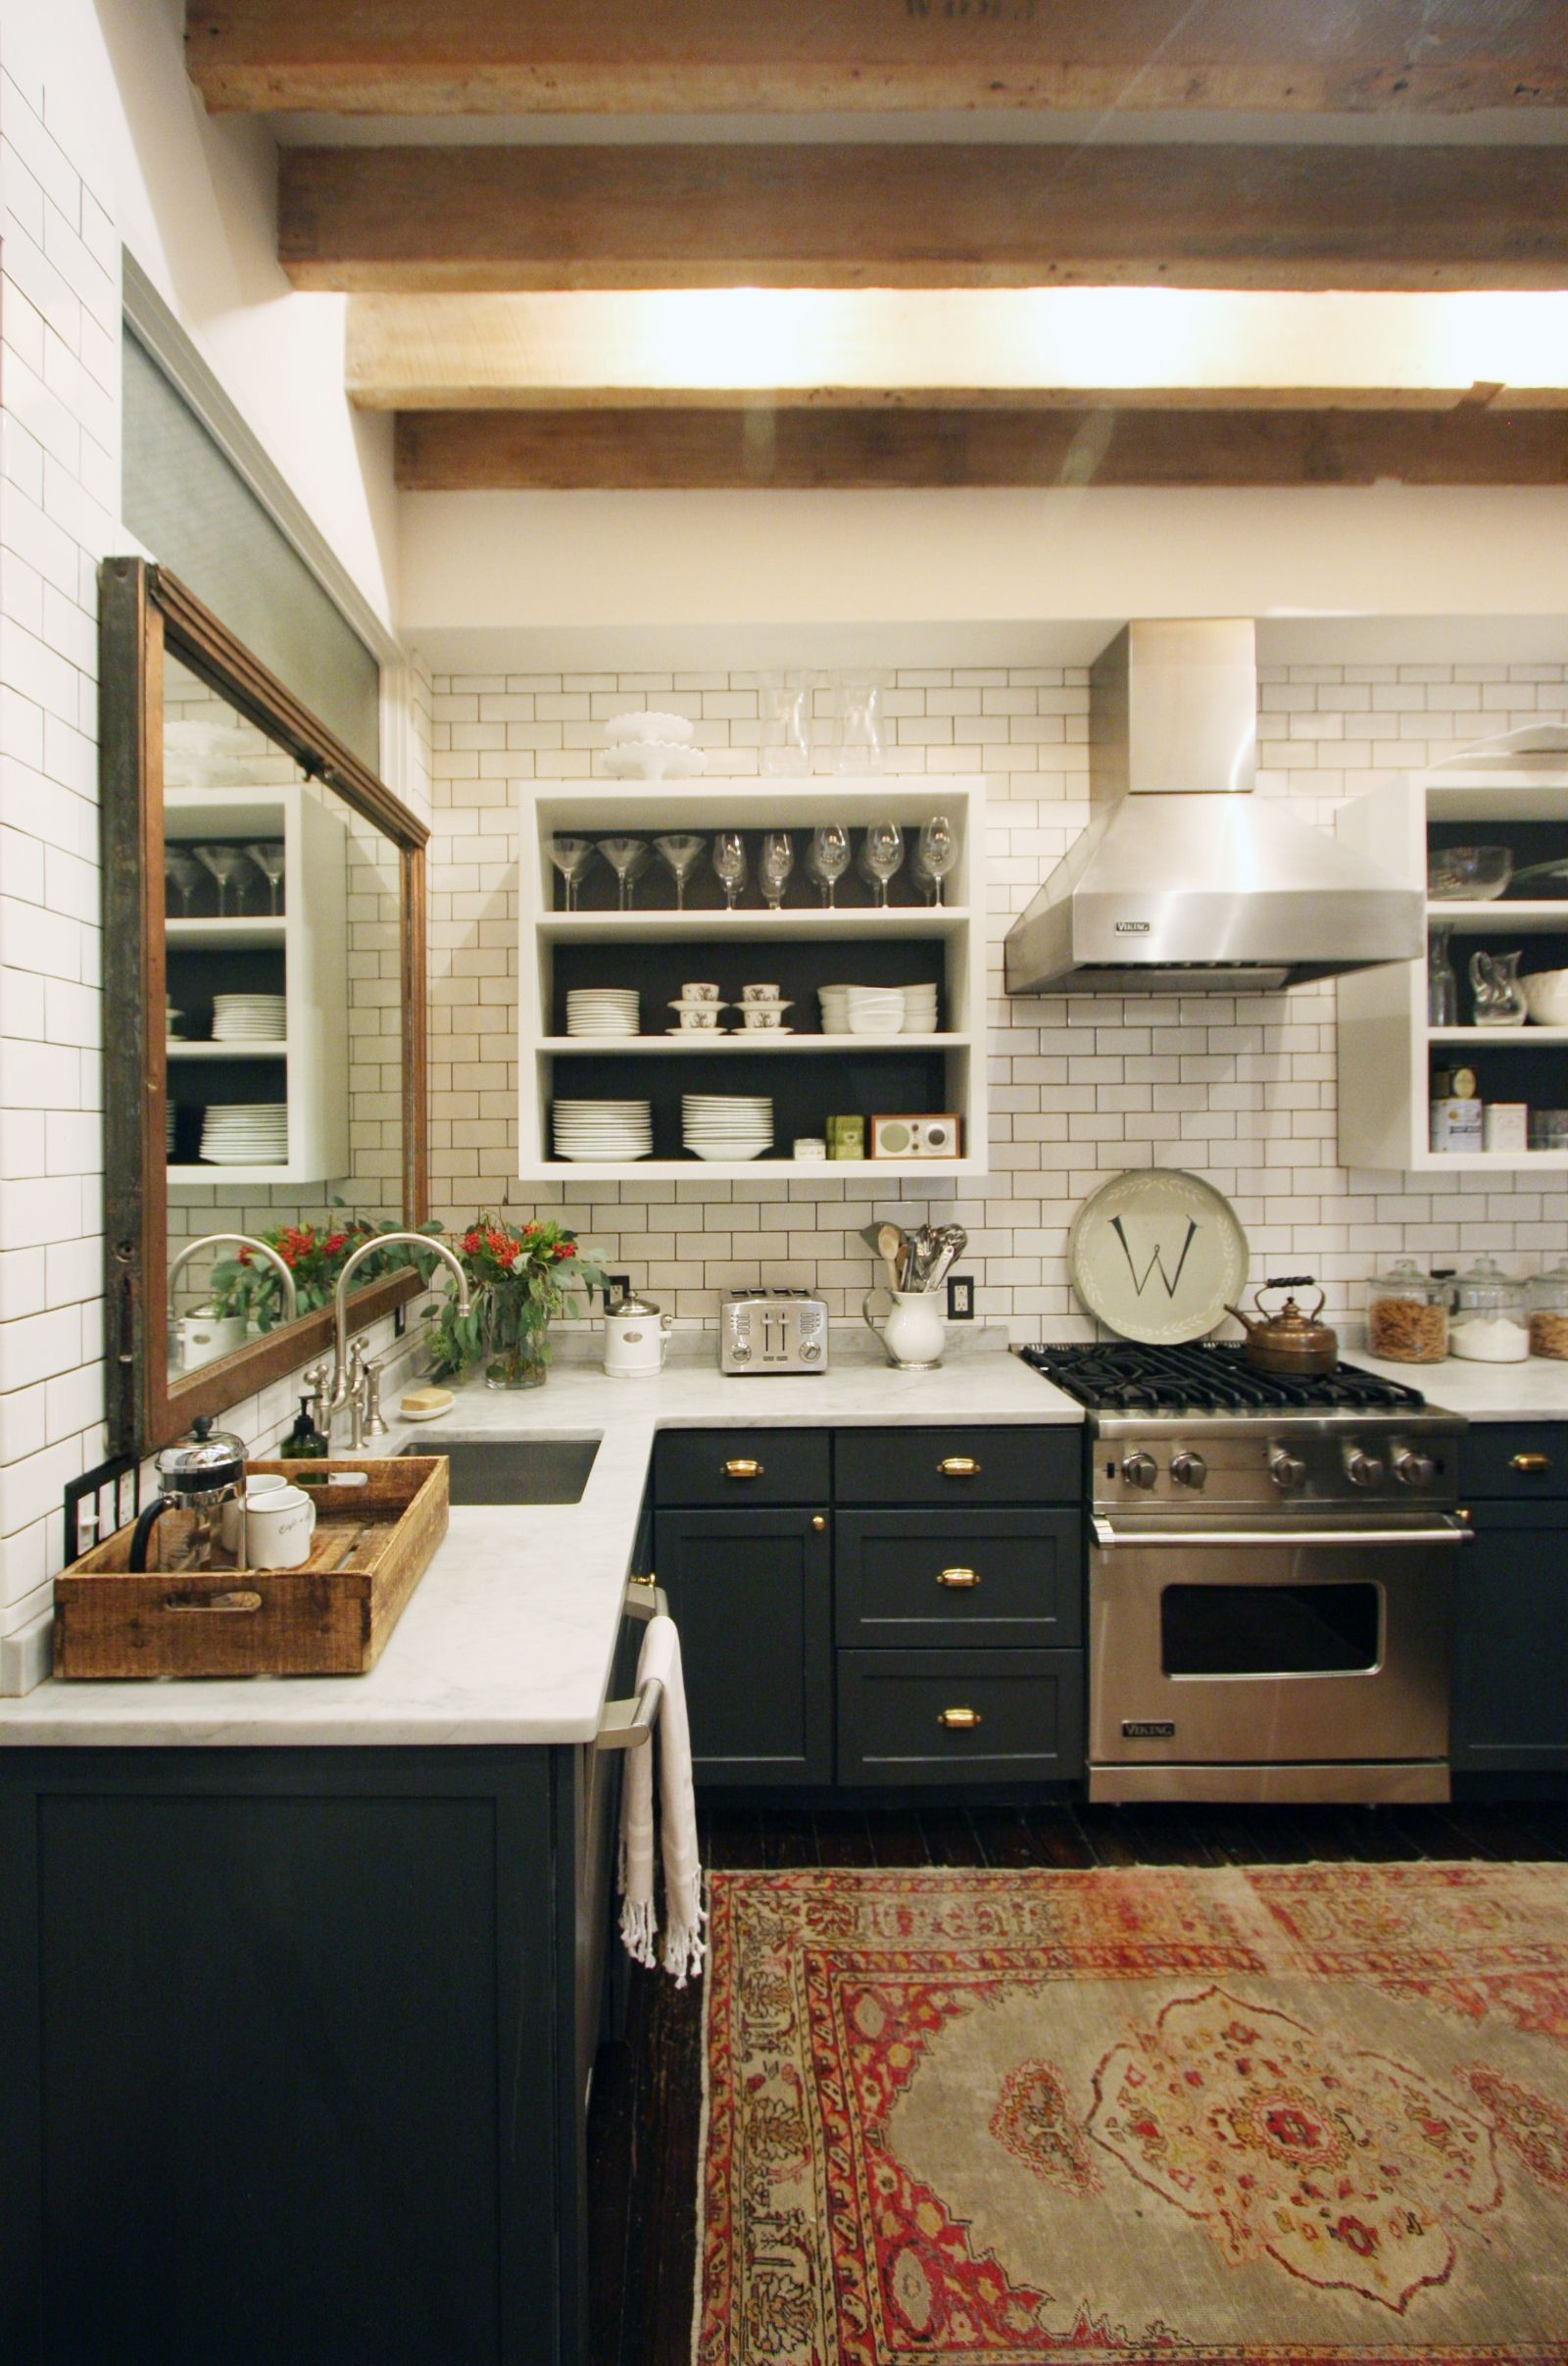 10 Home Trends That Will Be Huge In 2016 Home Trends Kitchen Remodel Home Kitchens Kitchen trends for 2016